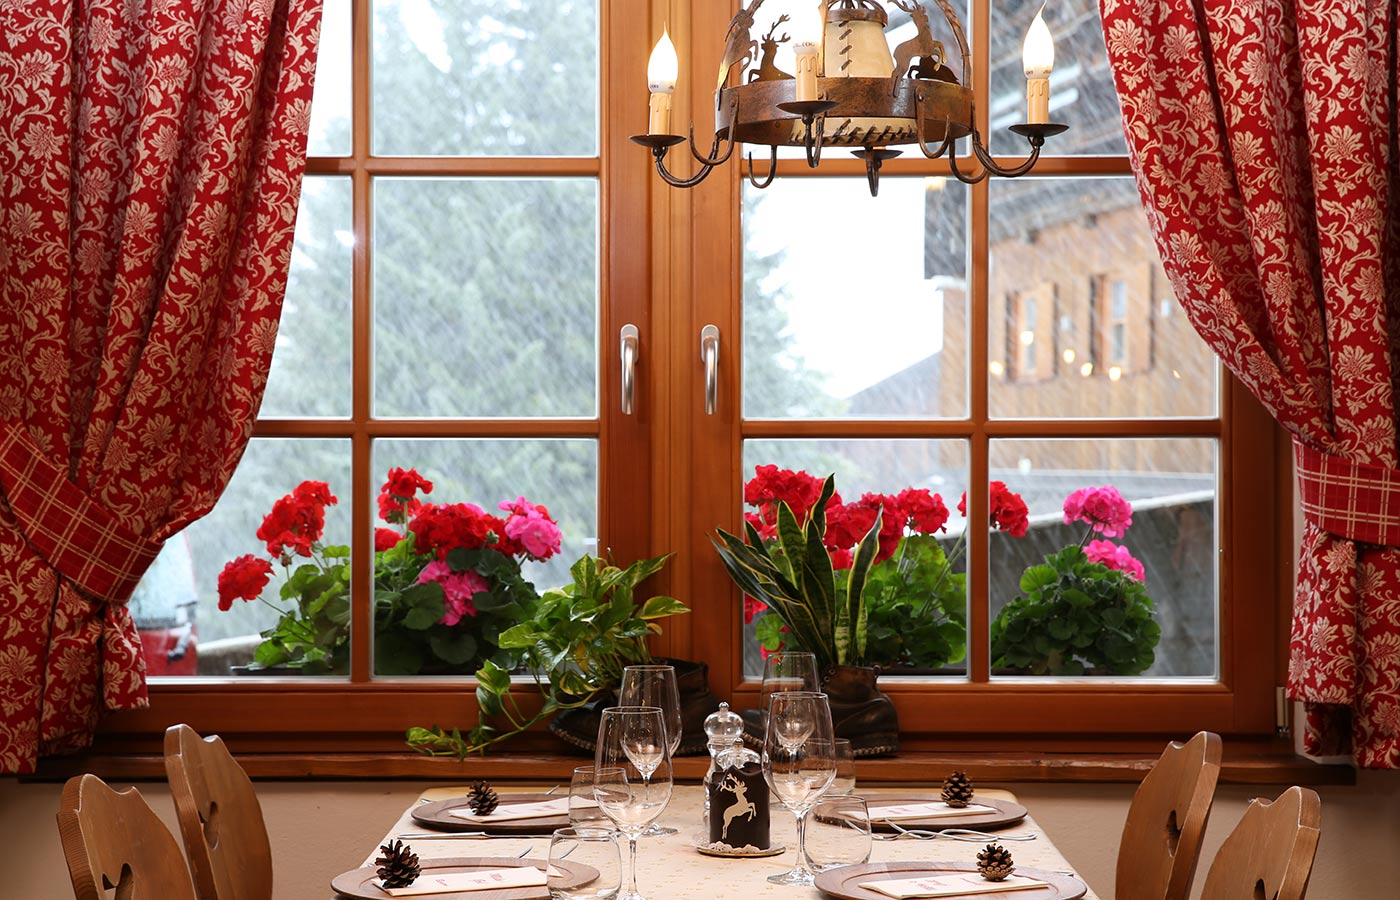 Wood window with red curtains and flowers on the sill over a prepared table